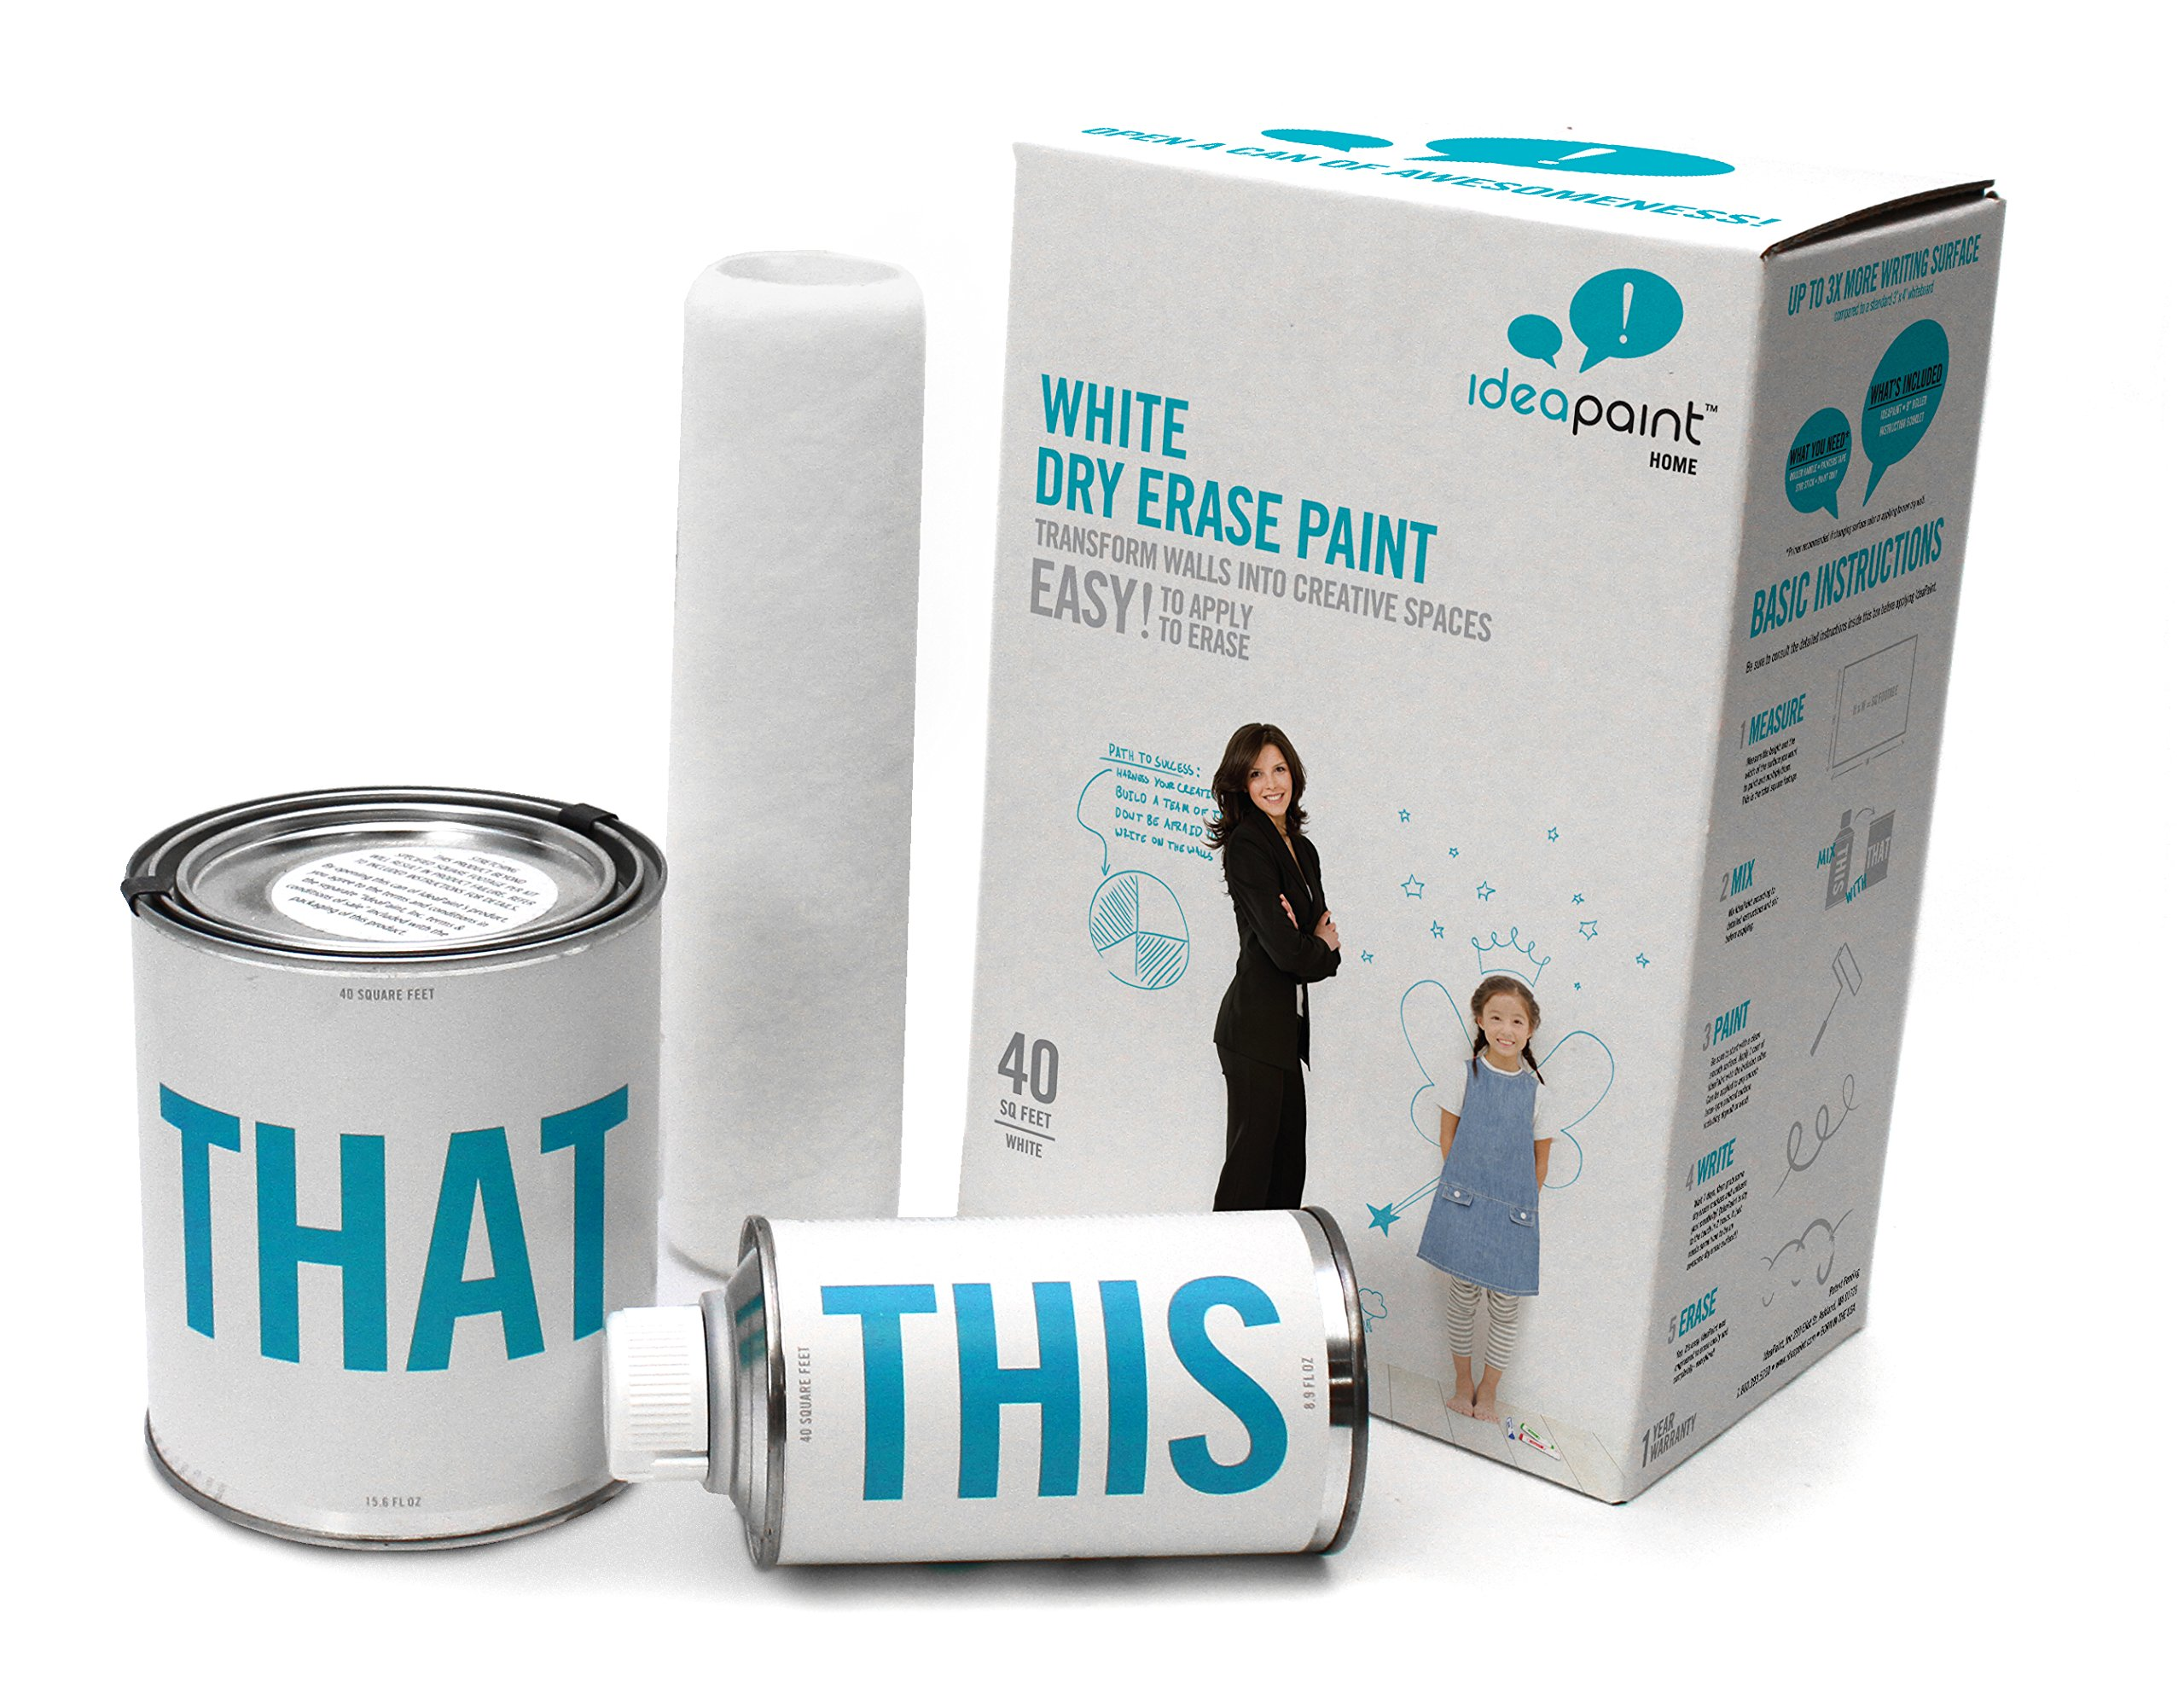 IdeaPaint HOME - White Dry Erase Paint Kit, 40 sq ft by IdeaPaint